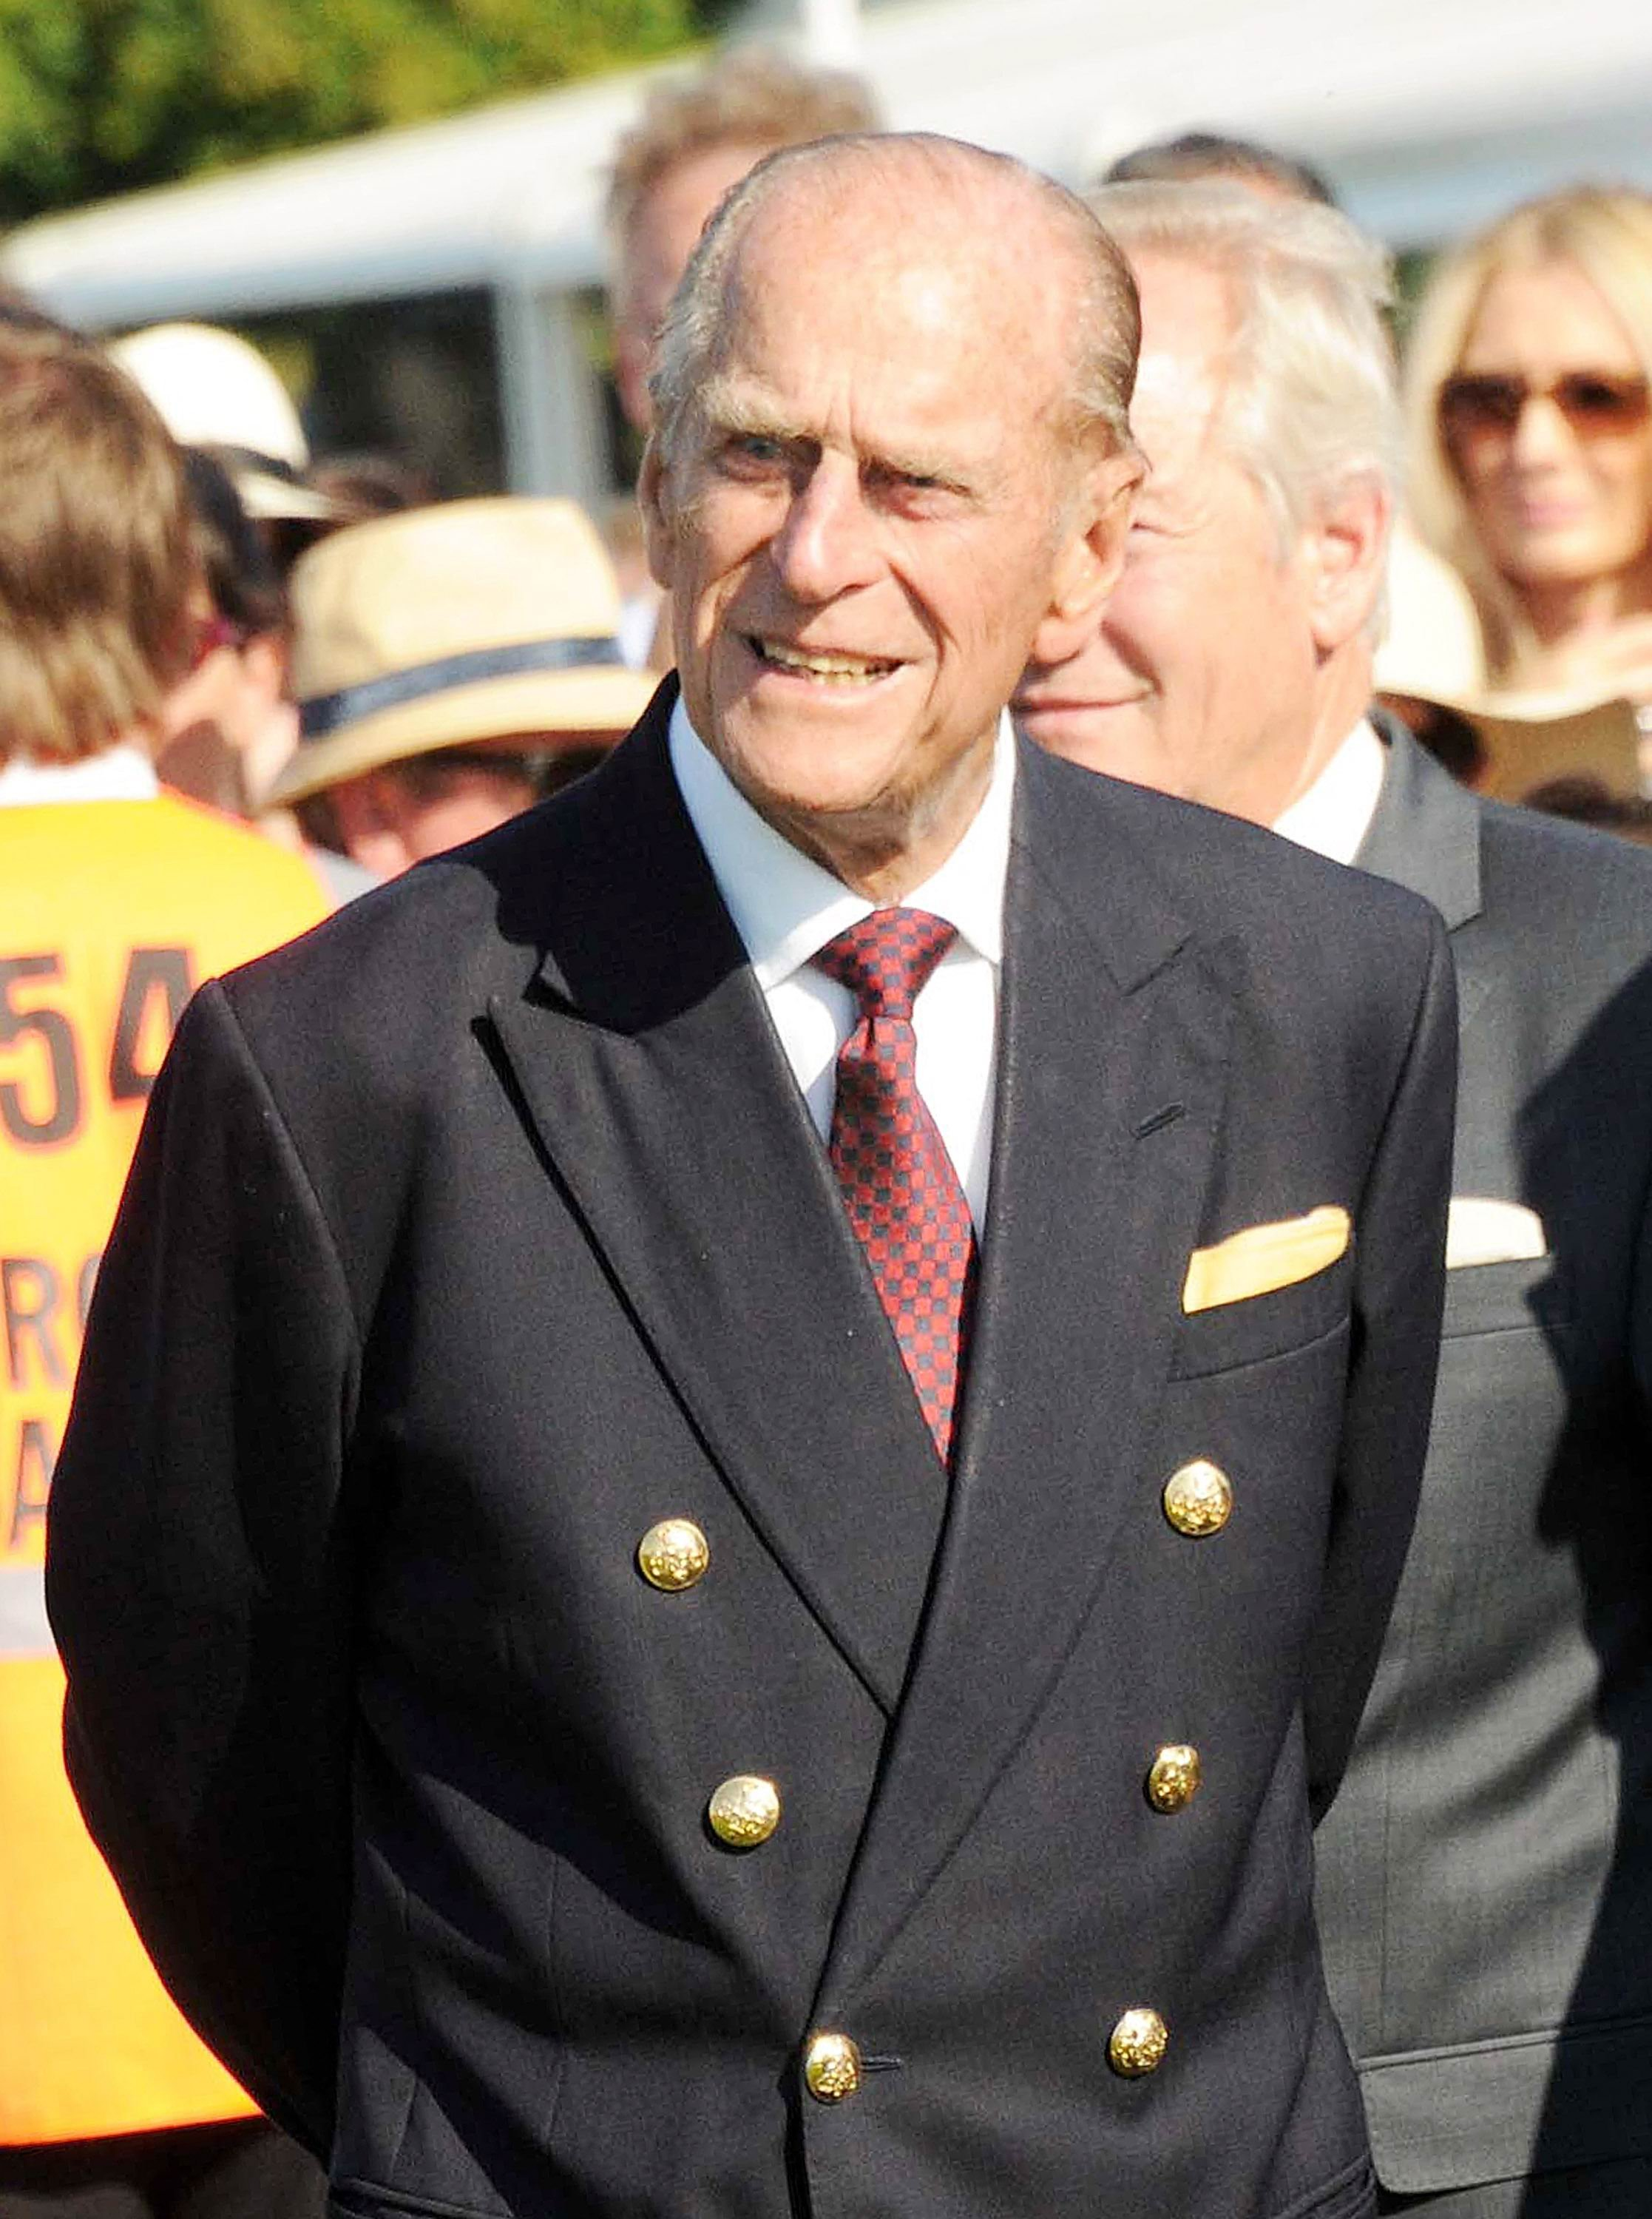 Prince Philip, Duke of Edinburgh, attends the Audi International Guards Polo at Guards Polo Club in Egham, United Kingdom on July 22, 2012